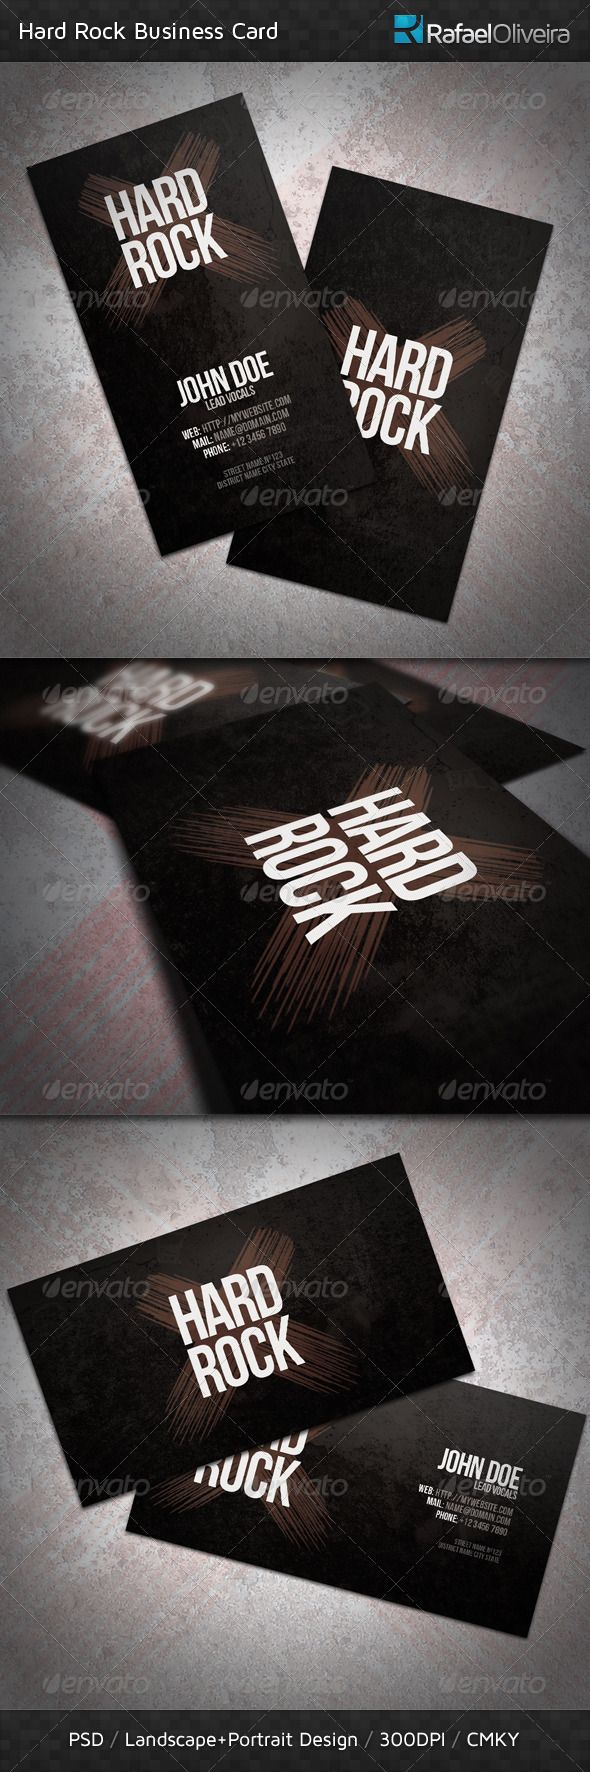 1700 best Business Card Design images on Pinterest | Business card ...